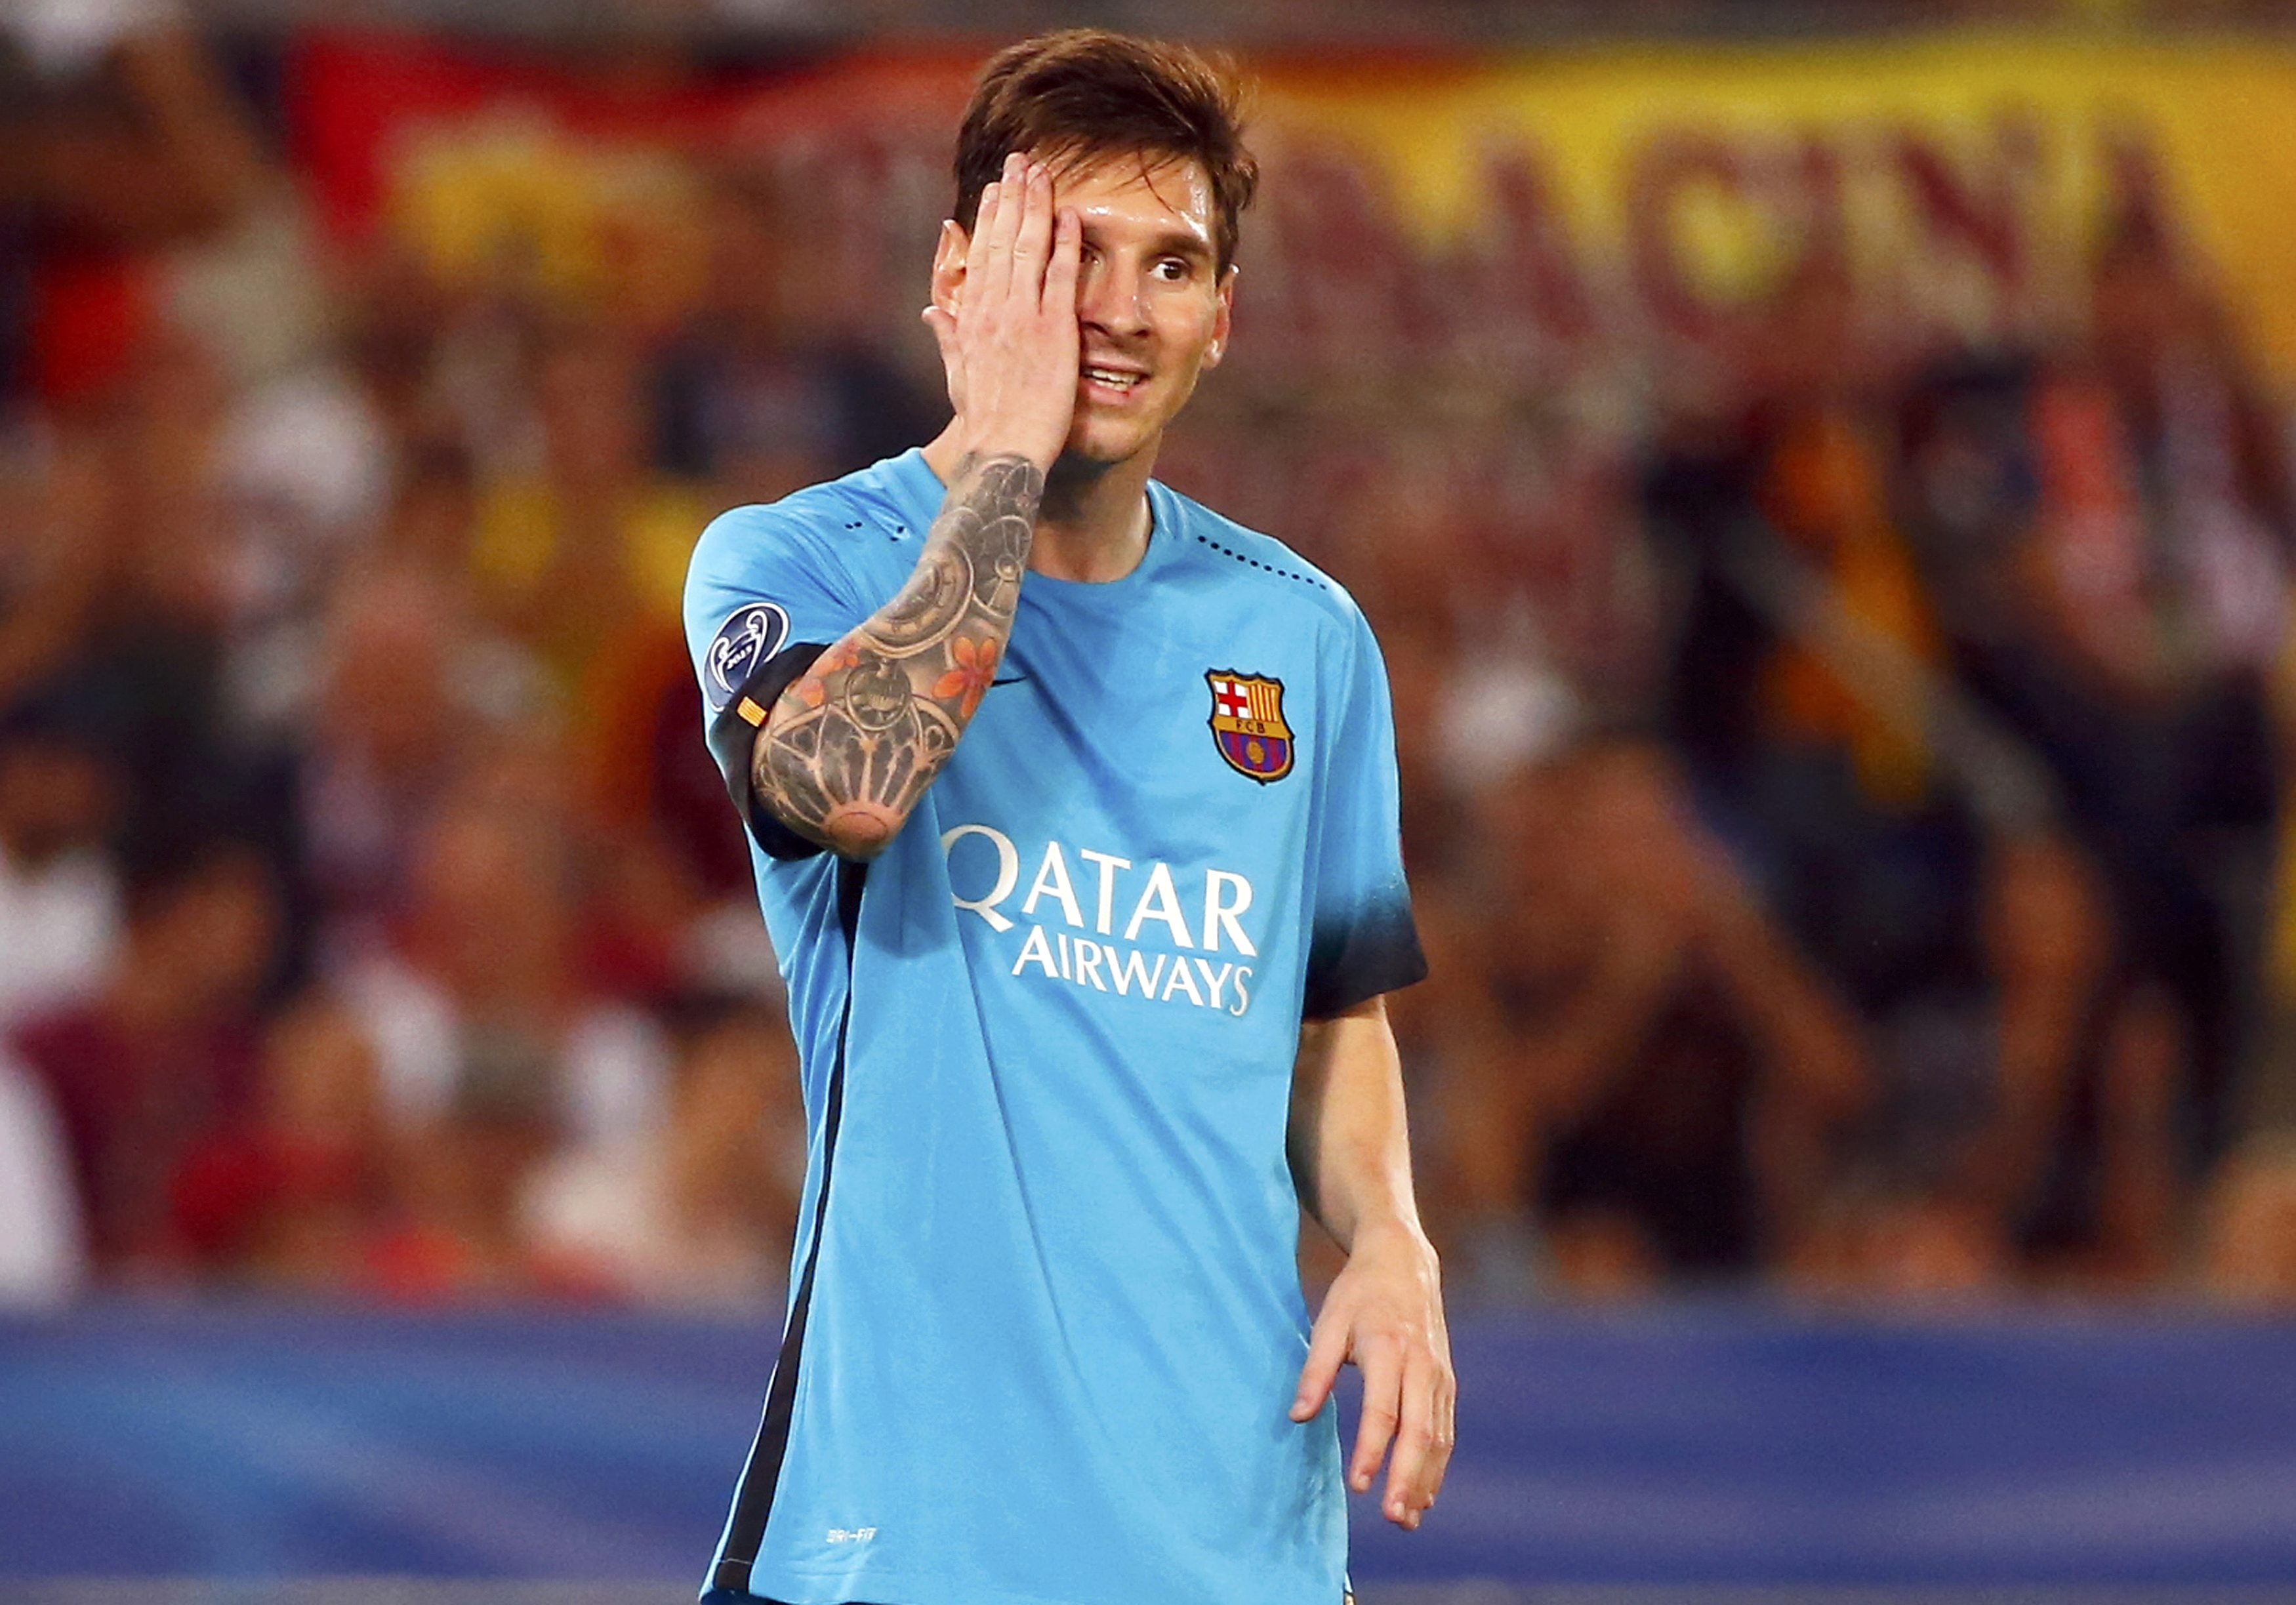 Barcelona's Messi reacts during the match against AS Roma in their Champions League match at the Olympic stadium in Rome